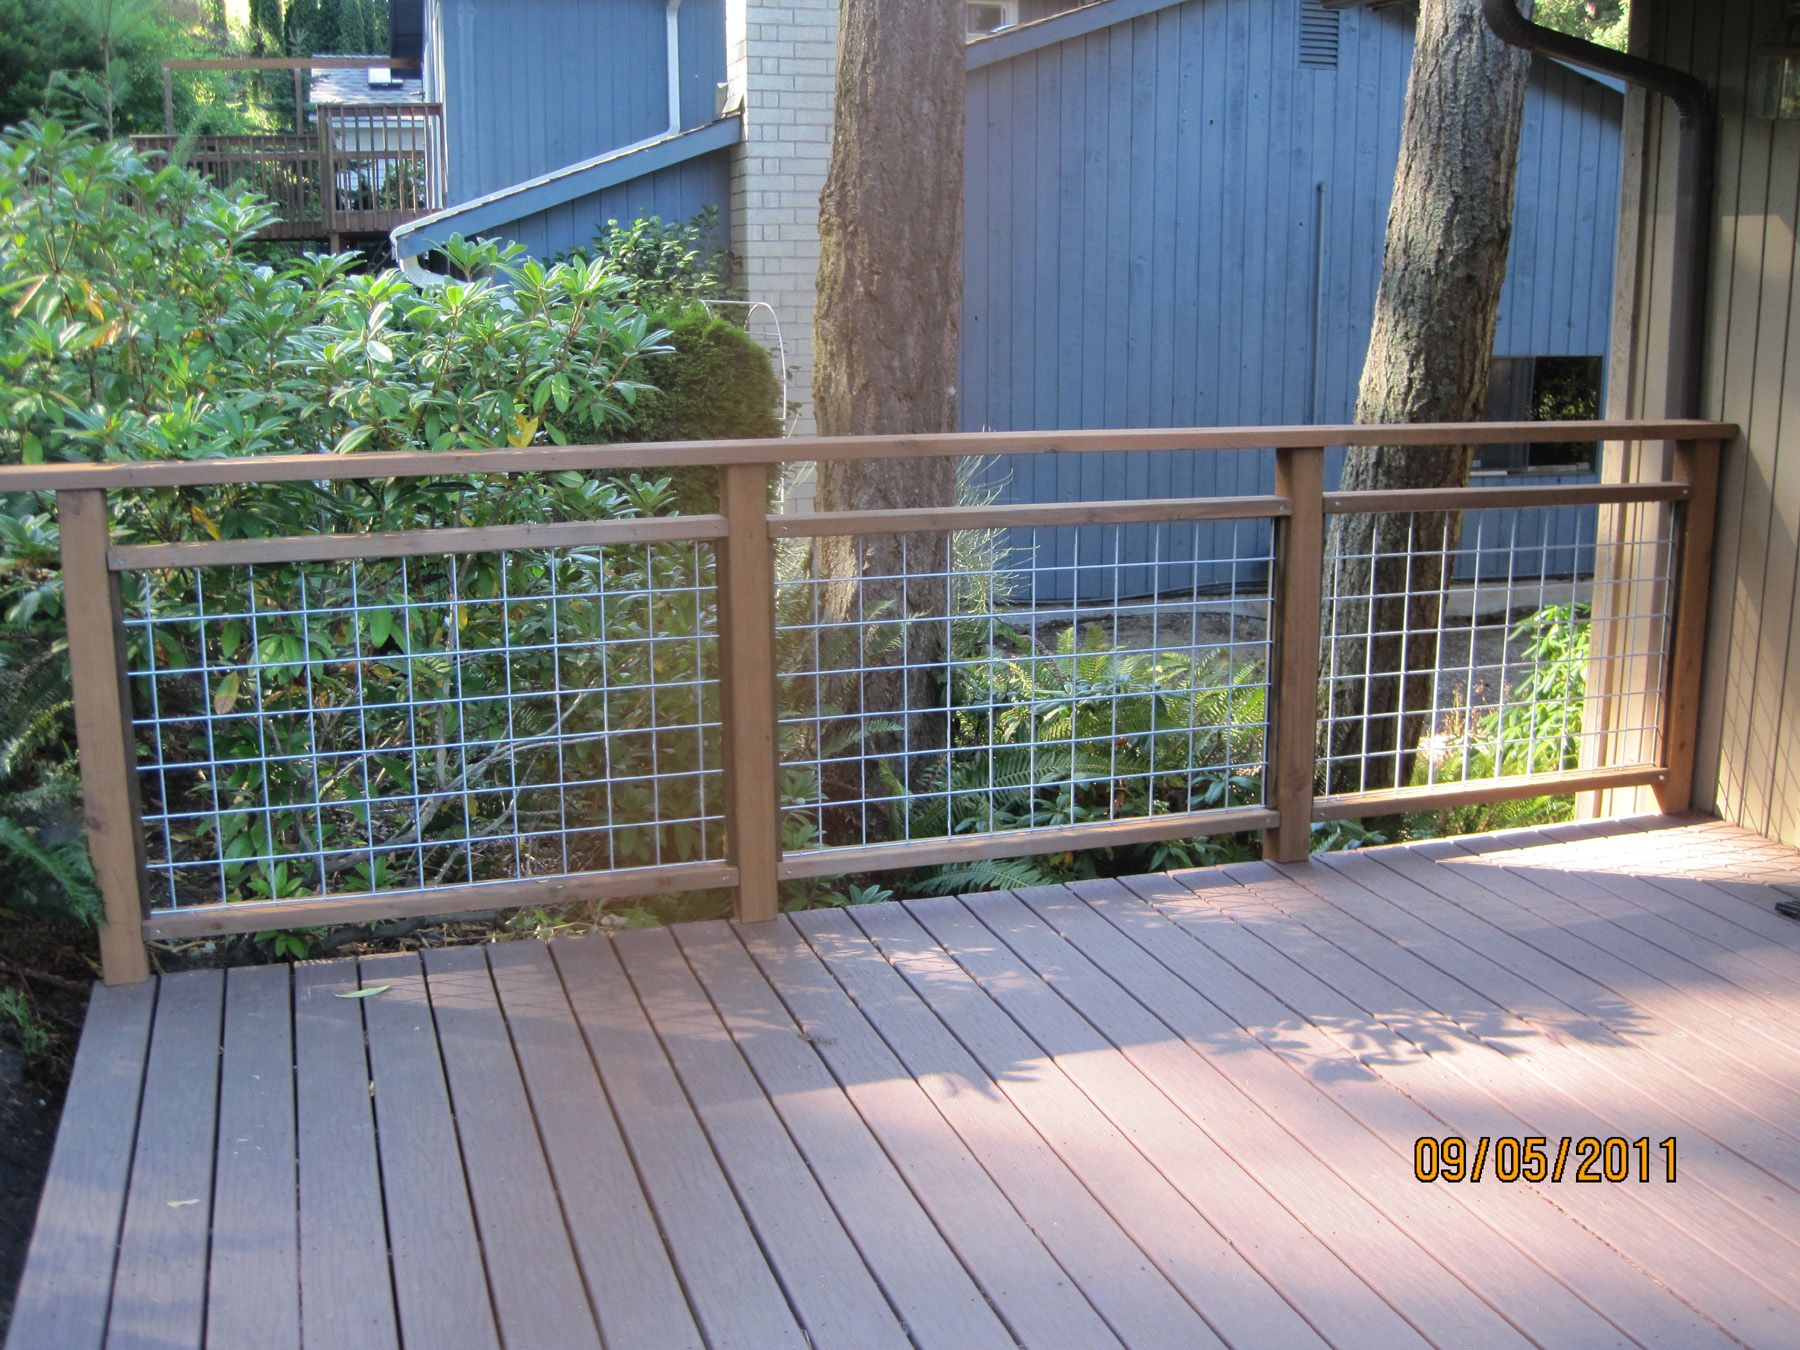 Do it yourself deck railing is done Deck railings Railings and